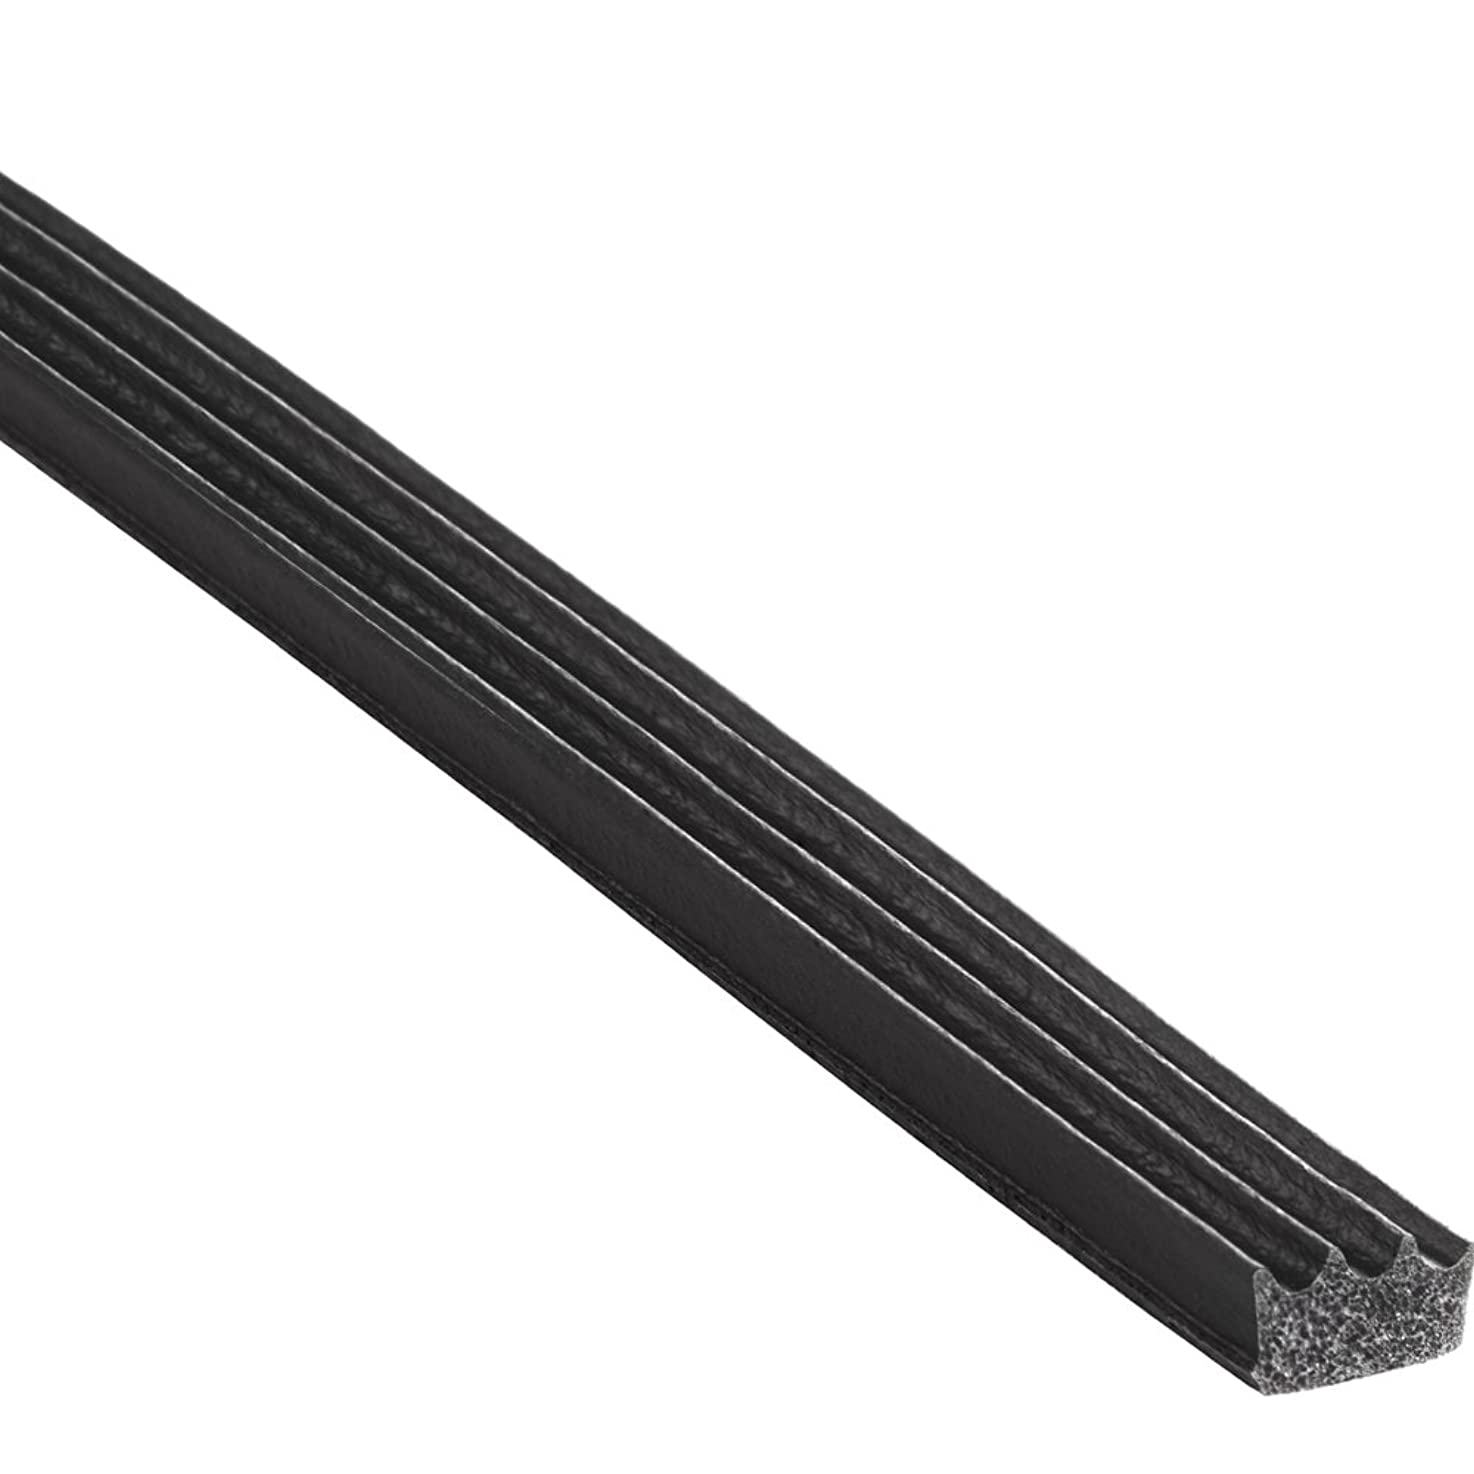 """Trim-Lok Ribbed Rectangle Rubber Seal – EPDM Foam Rubber Seal with High Tack (HT) Adhesive – Door & Window Weather Seal for Garage Doors, Automobiles, Boats – .187"""" Height, .375"""" Width, 100' Length"""